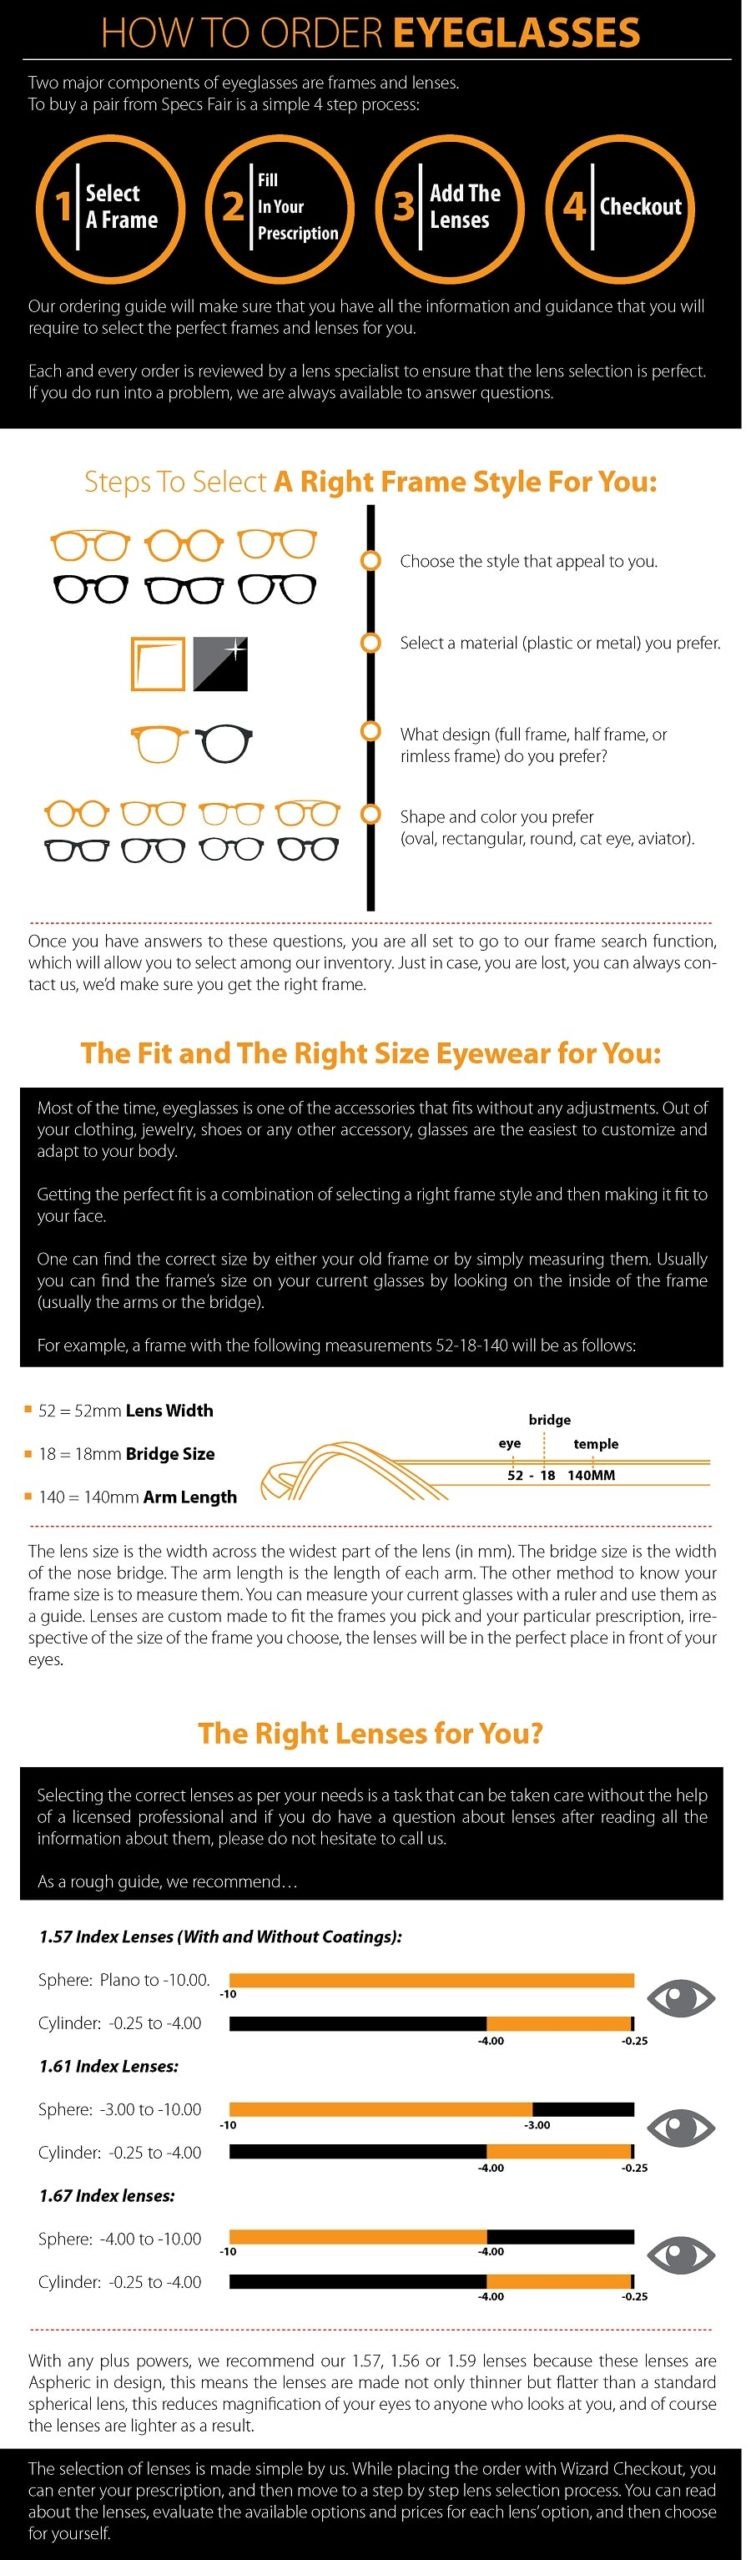 How to order eyeglasses with Specs Fair 1